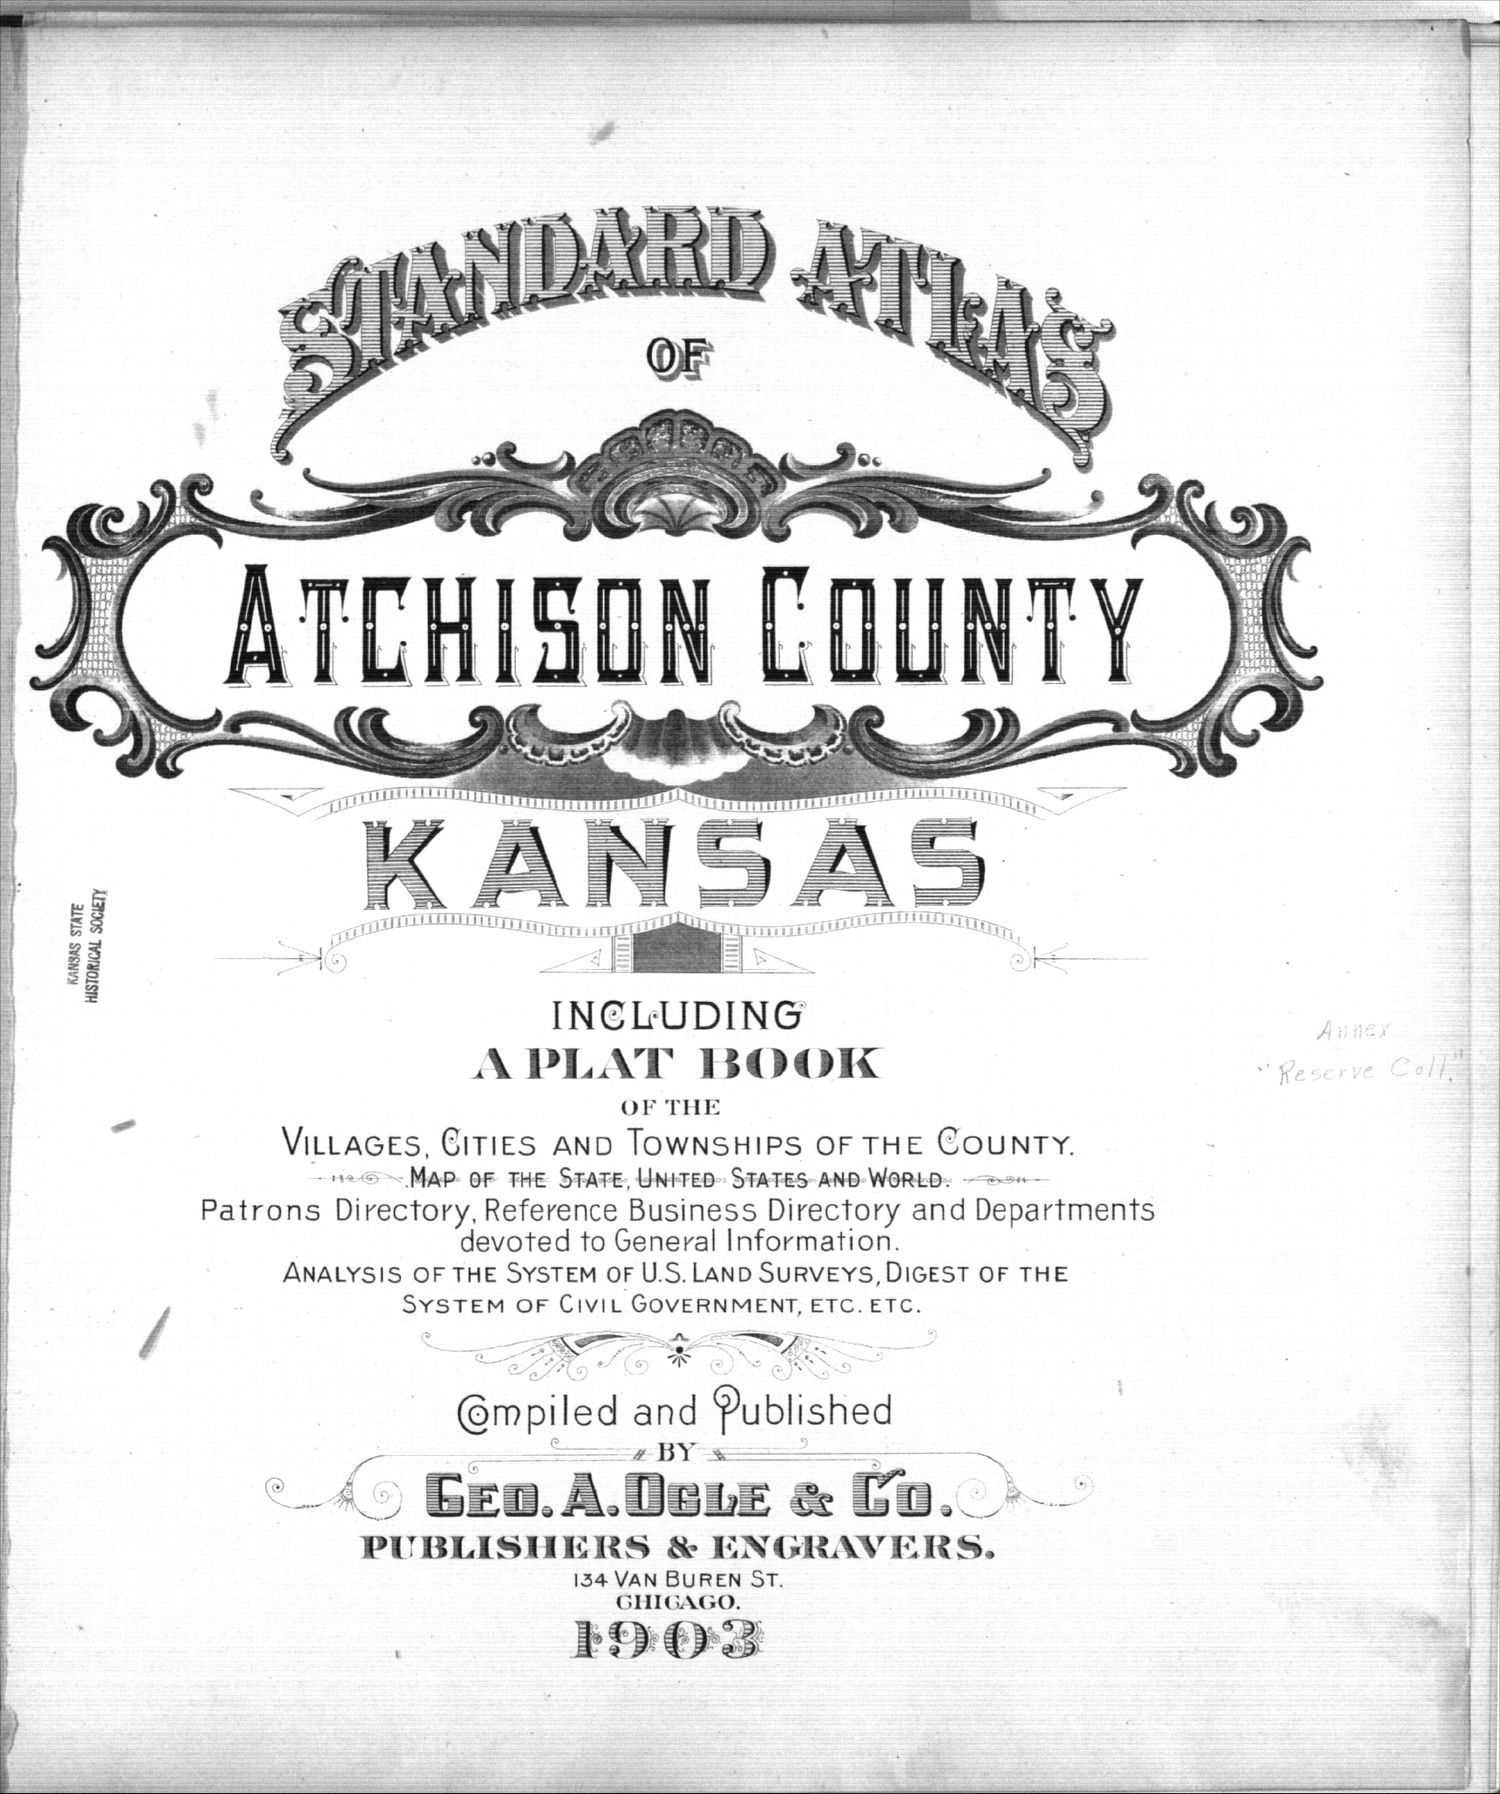 Standard atlas of Atchison County, Kansas - Title Page